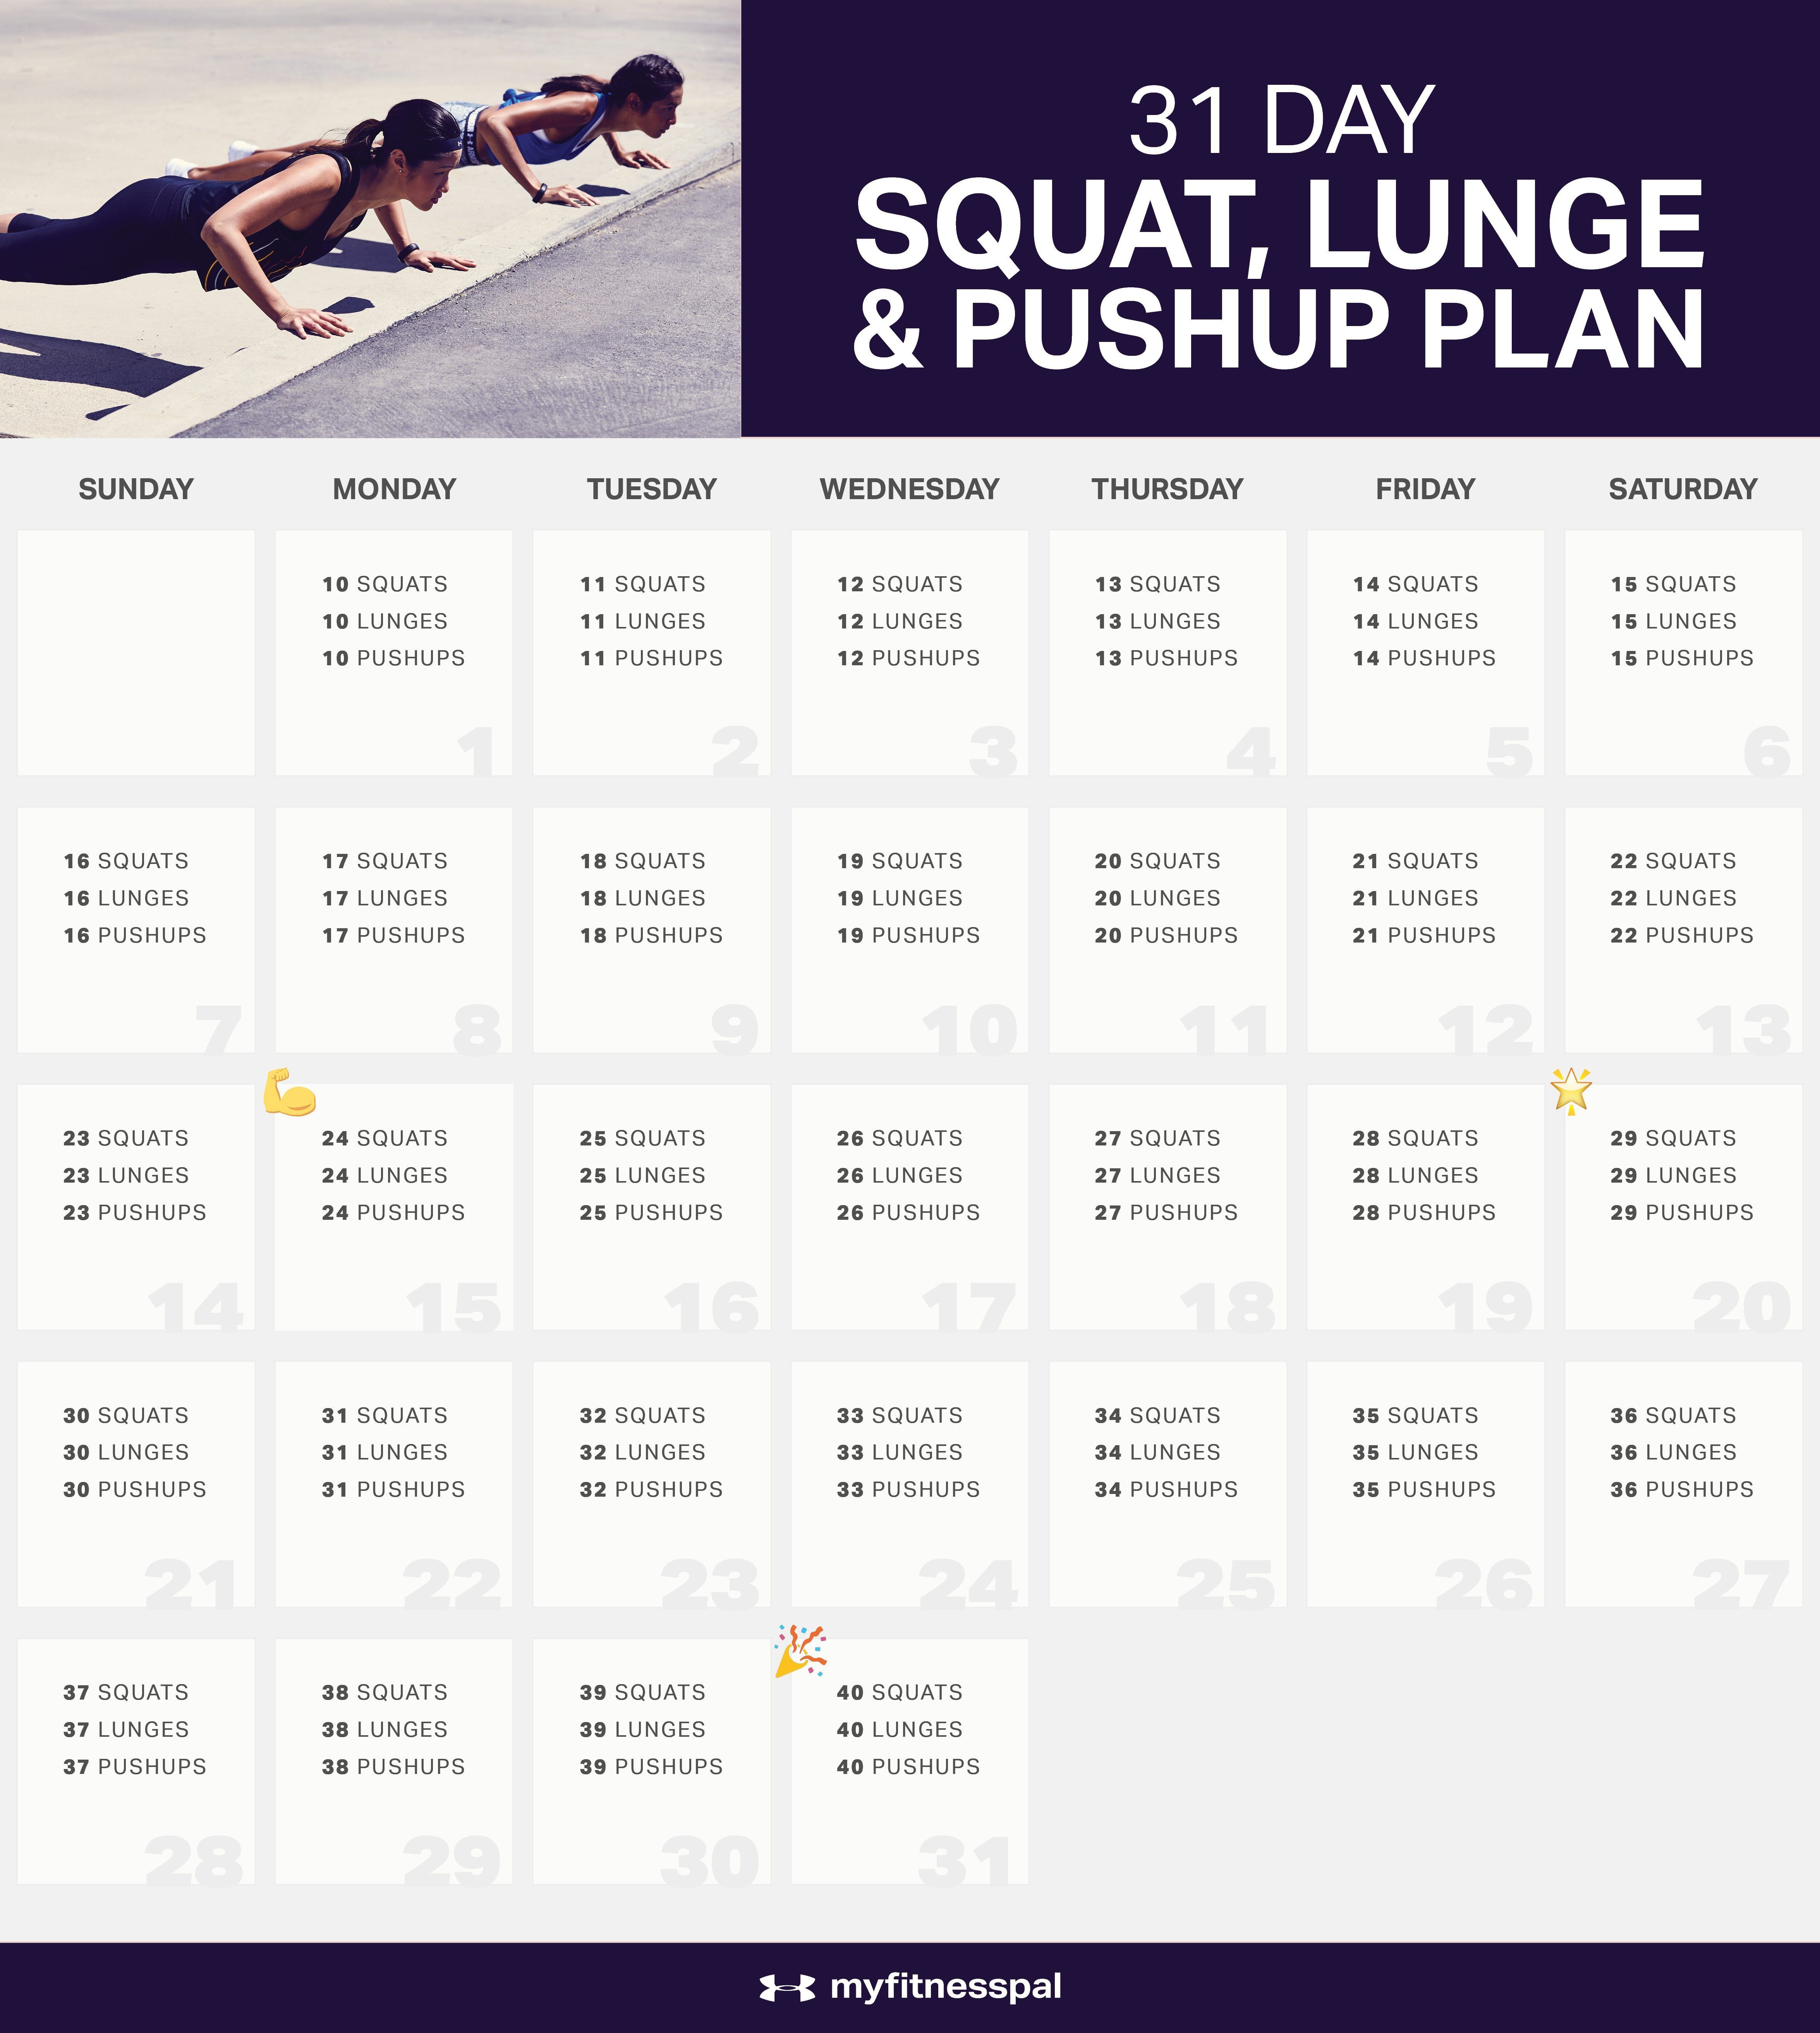 The 31 Day Squat Challenge, Lunge & Pushup Plan (With Images Intended For 30 Day Squat Challenge Schedule Calendar